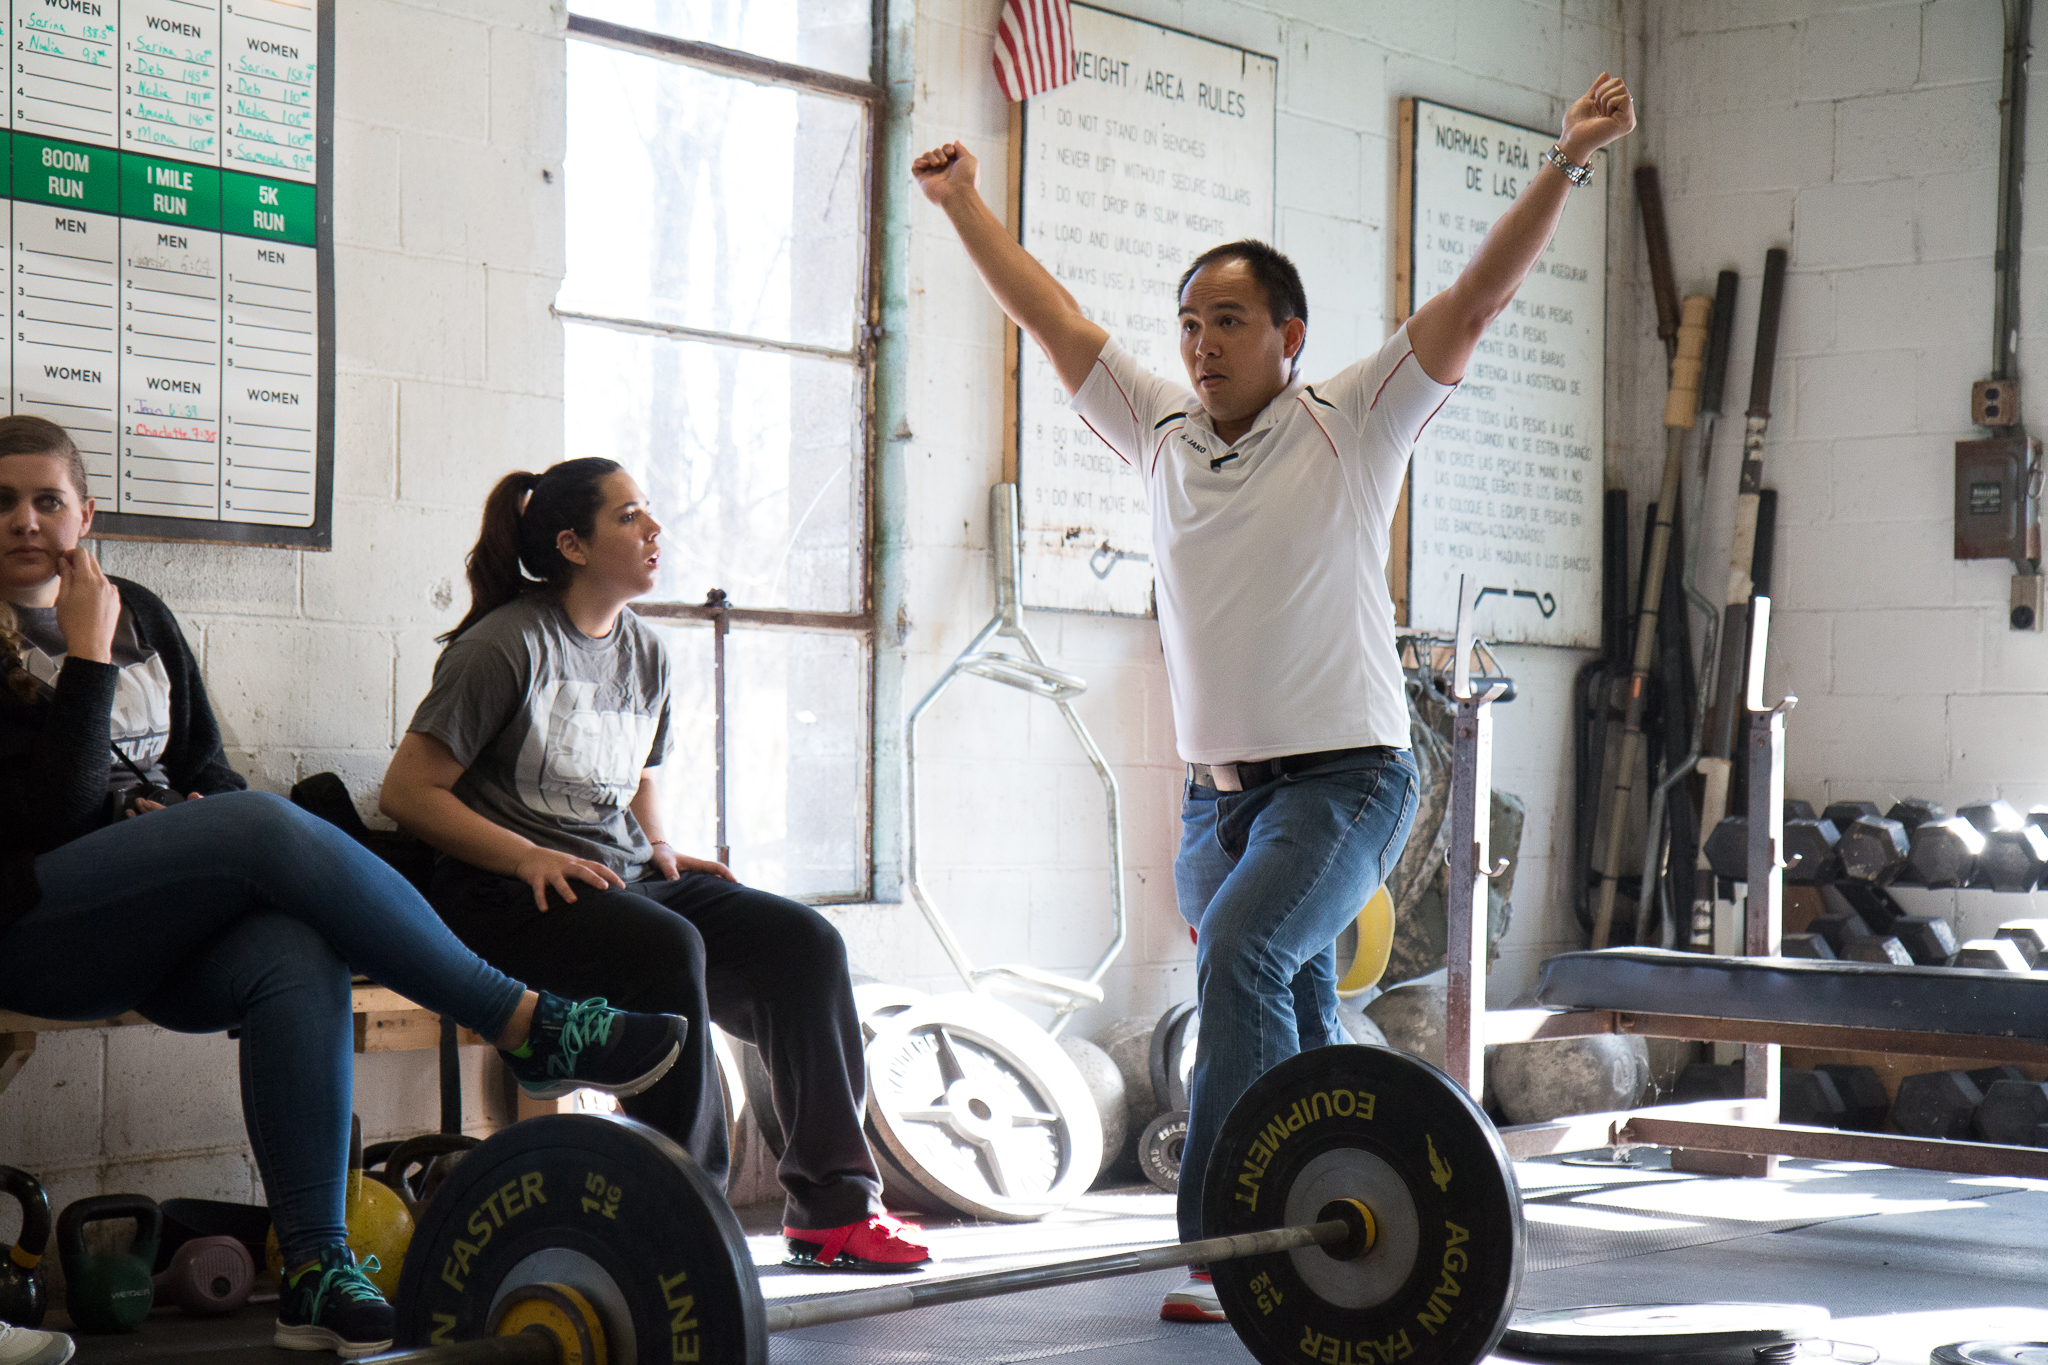 warwick-new-york-intrepid-strength-conditioning-winter-open-weightlifting-meet-weightlifting-photography (9 of 15).jpg